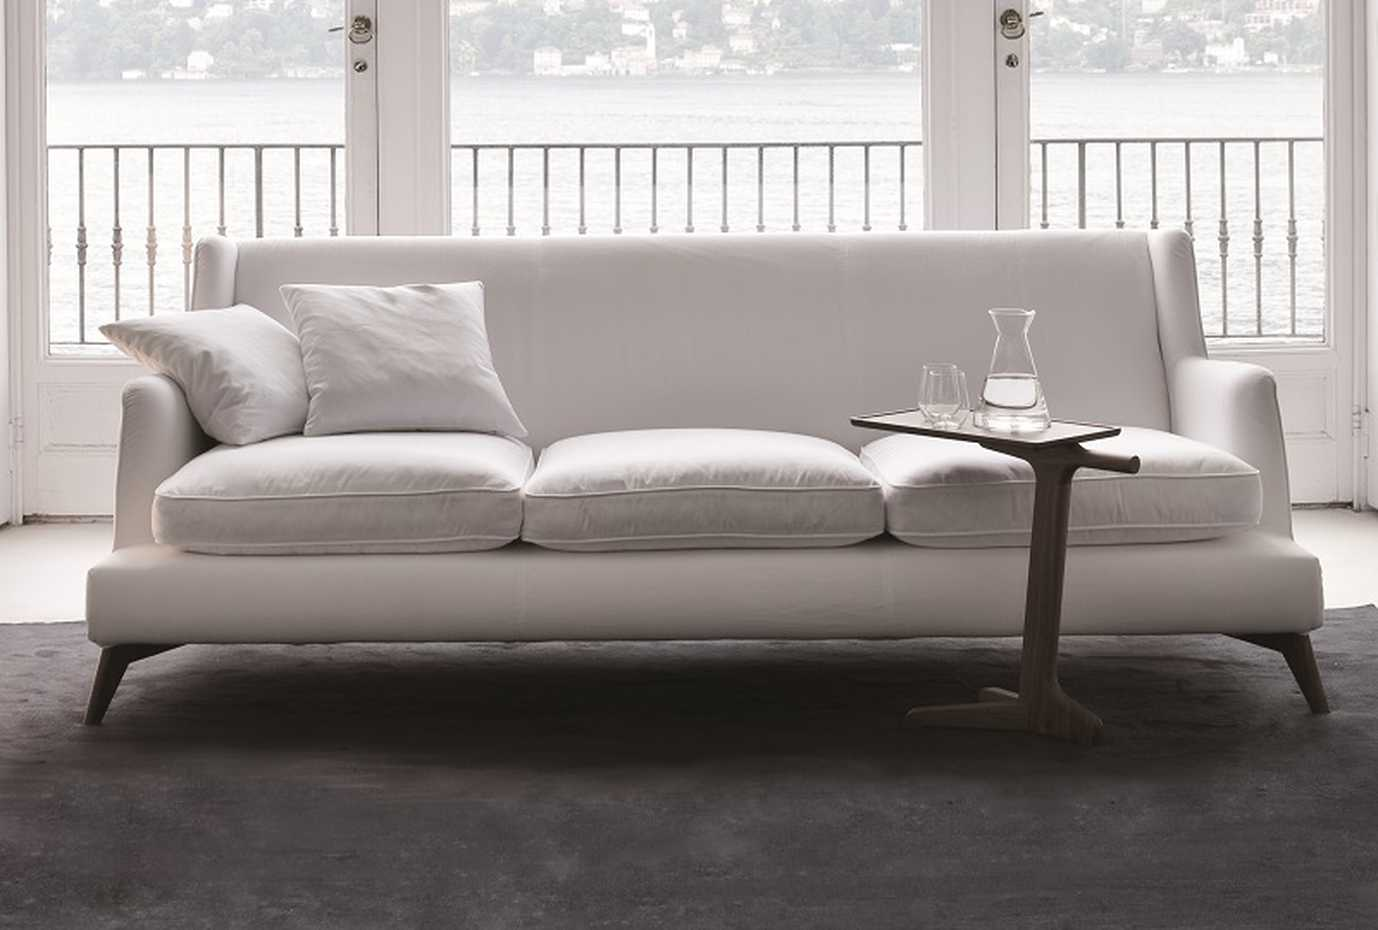 Class by Vibieffe product image 10